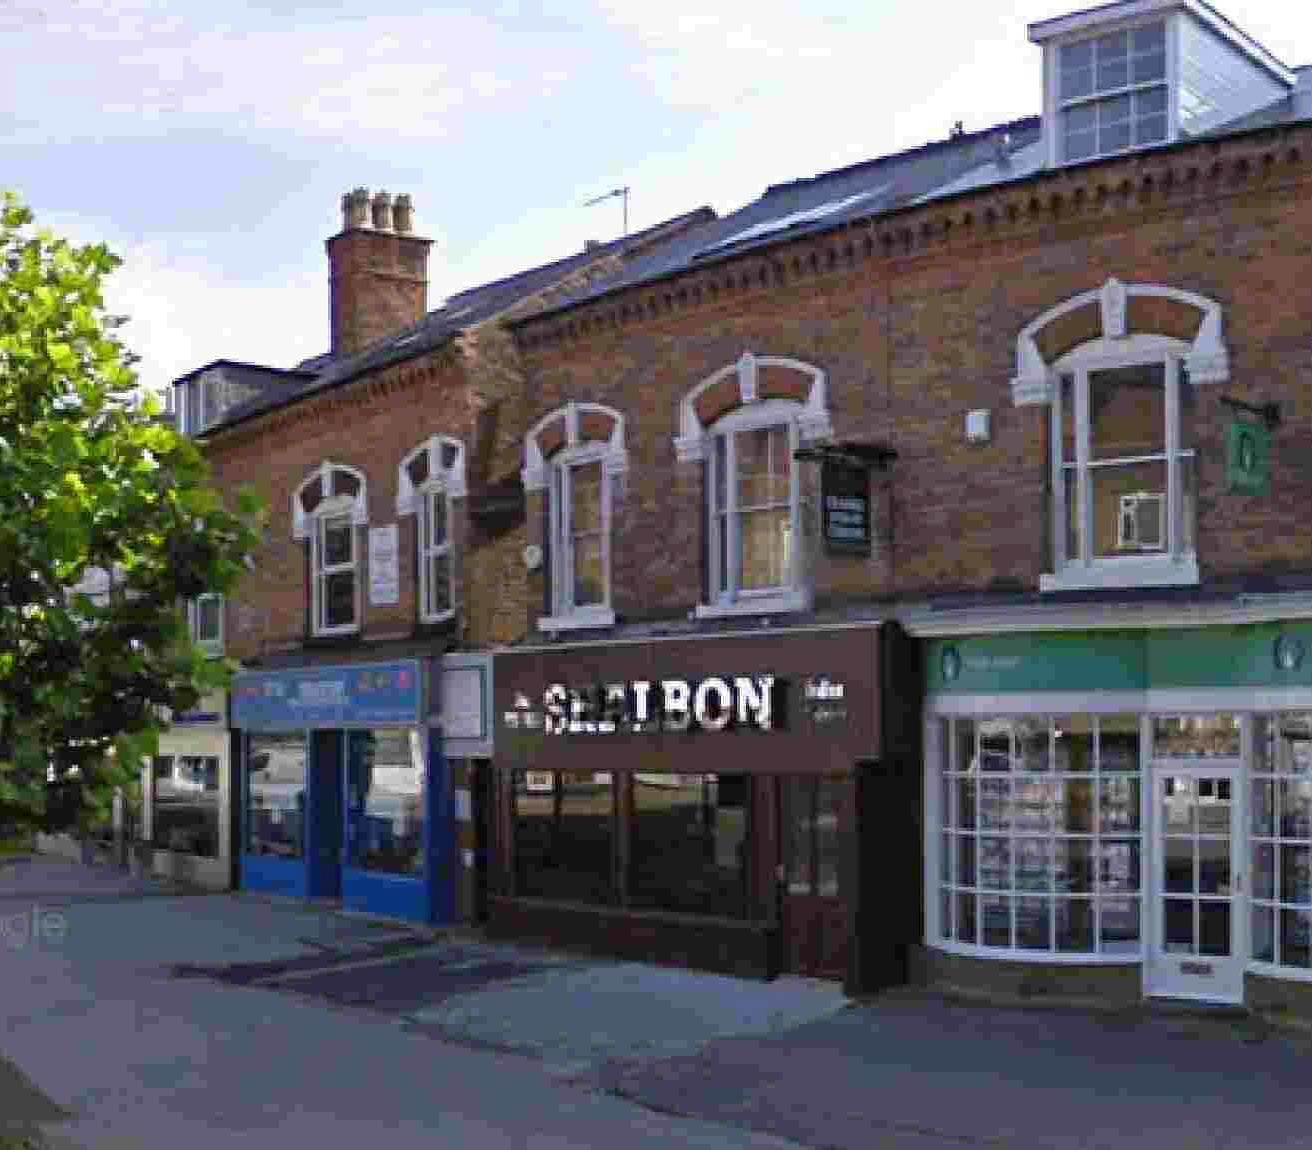 Shalbon Indian Restaurant